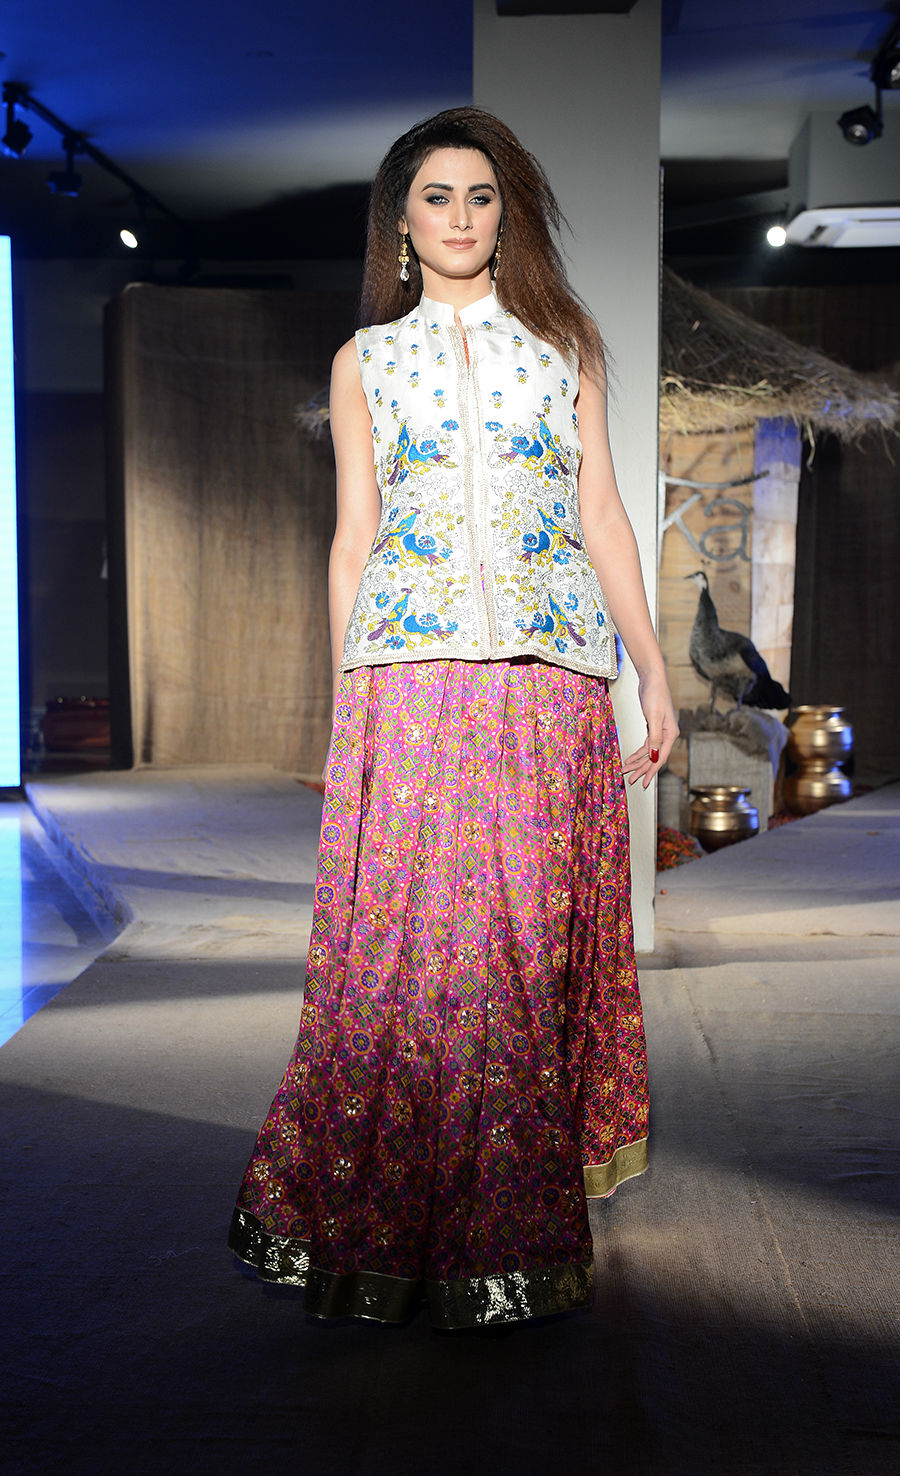 Taanka a brand dedicated to highlighting the arts and crafts of Interior Sindh launches at PFDC Fashion Active in Lahore (6).jpg